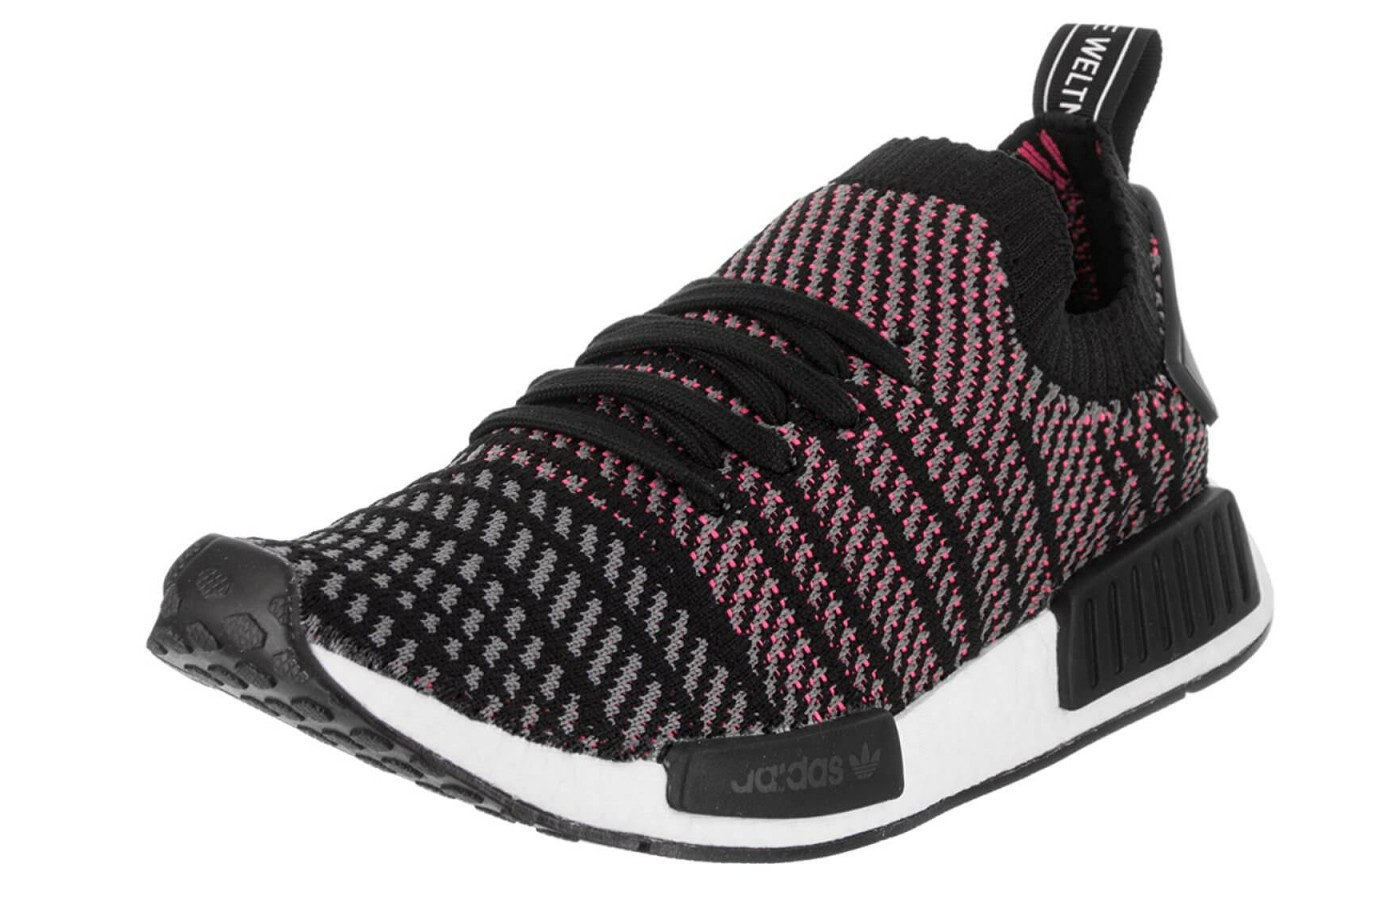 ef00c9024 The Adidas NMD R1 Stlt Primeknit features a Primeknit upper ...